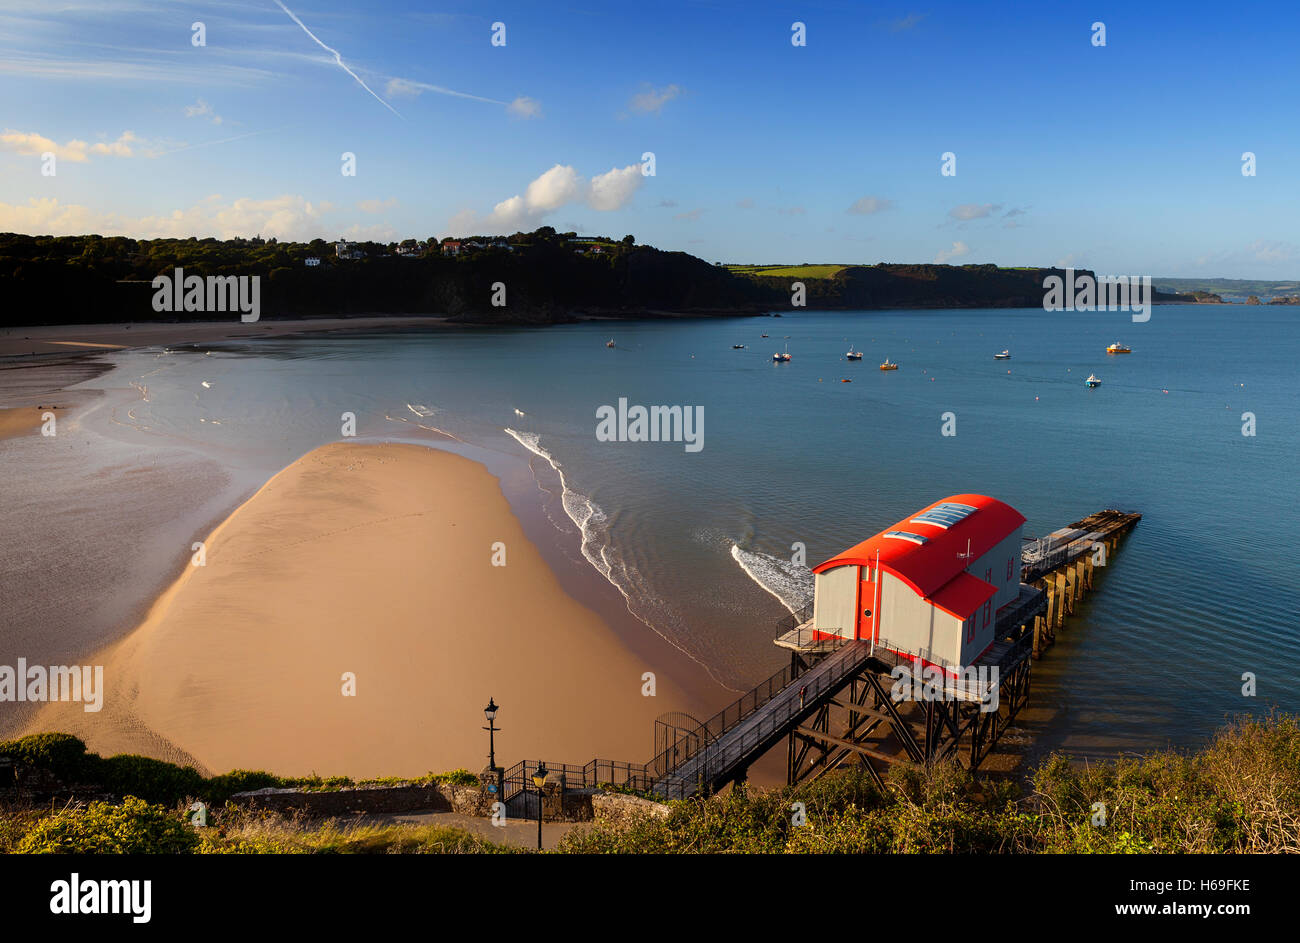 The old Lifeboat Station in Tenby, Pembrokeshire, Wales, Featured in UK Channel 4 program,  'Grand Designs', - Stock Image